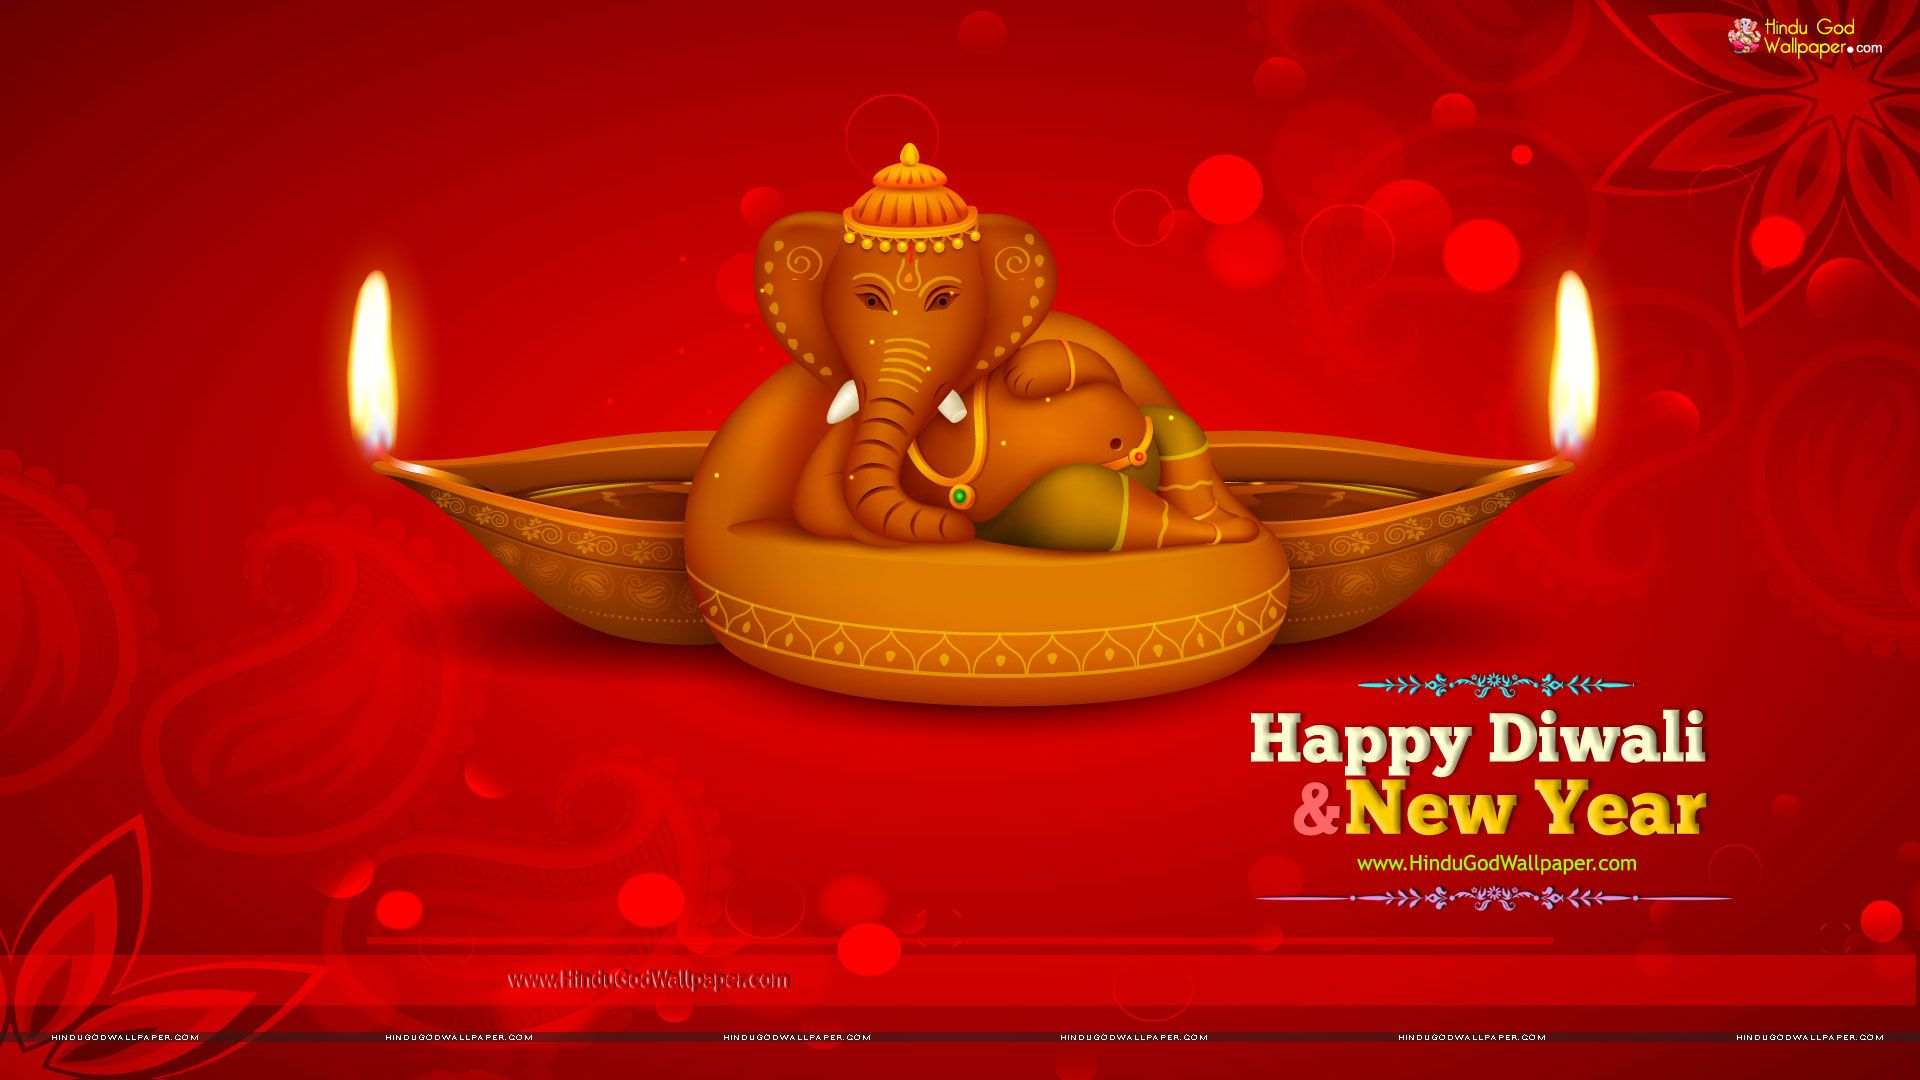 Diwali new year wallpaper hd free download diwali wallpapers diwali new year wallpaper hd free download kristyandbryce Gallery